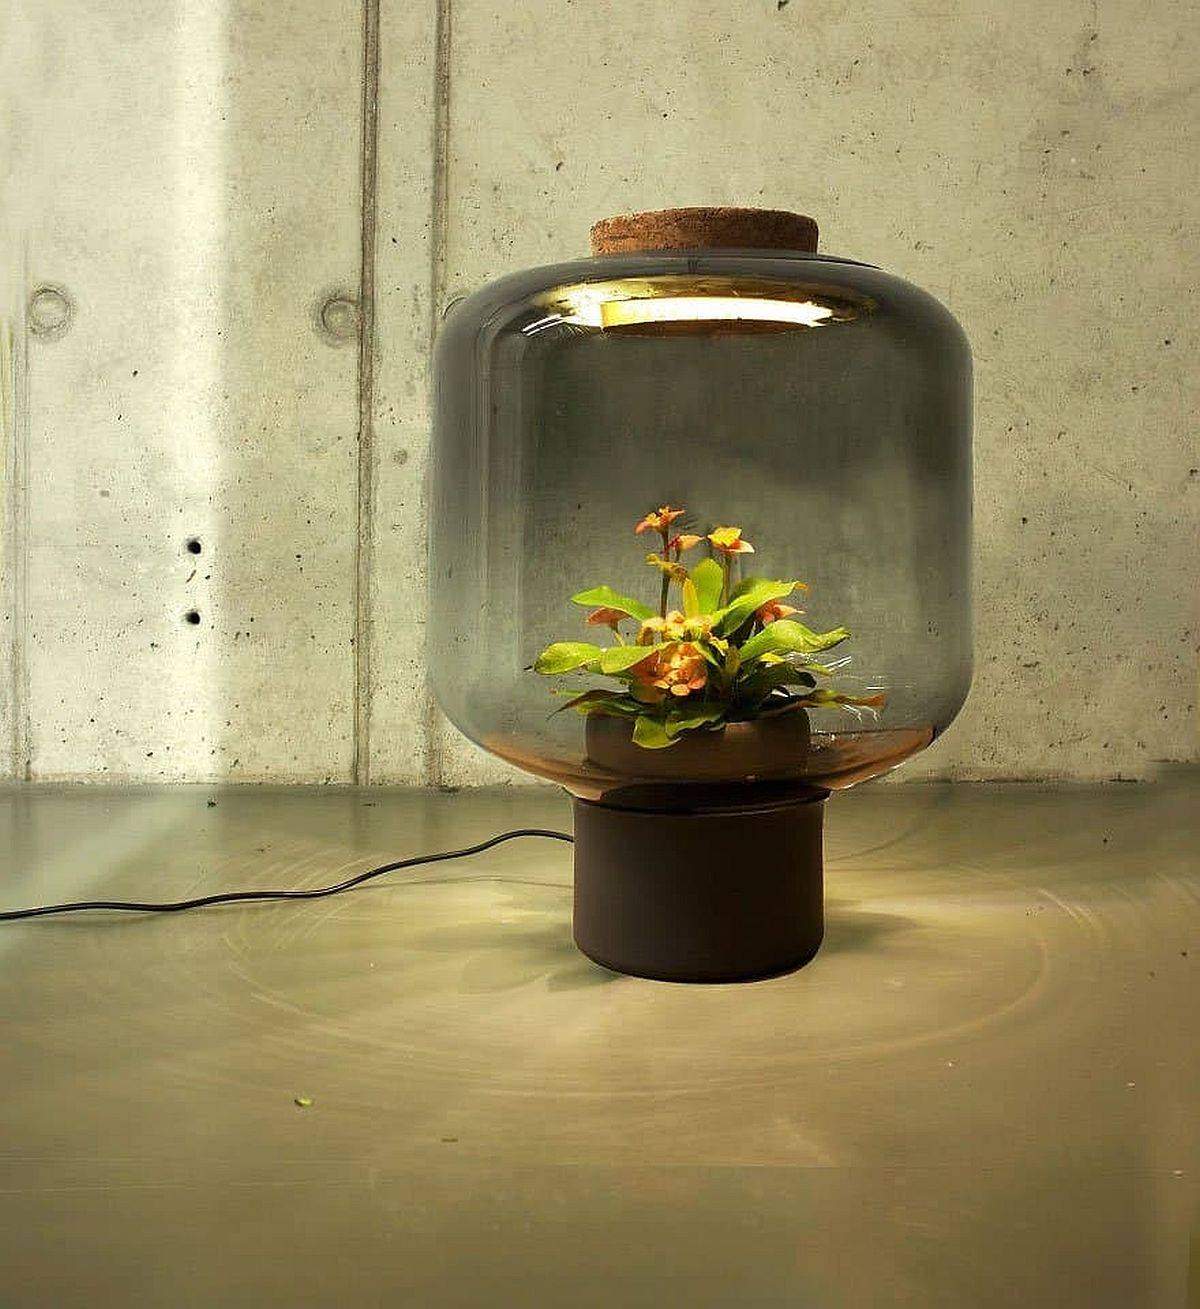 Mygdal Plantlights also serve you well as a fashionable floor lamp